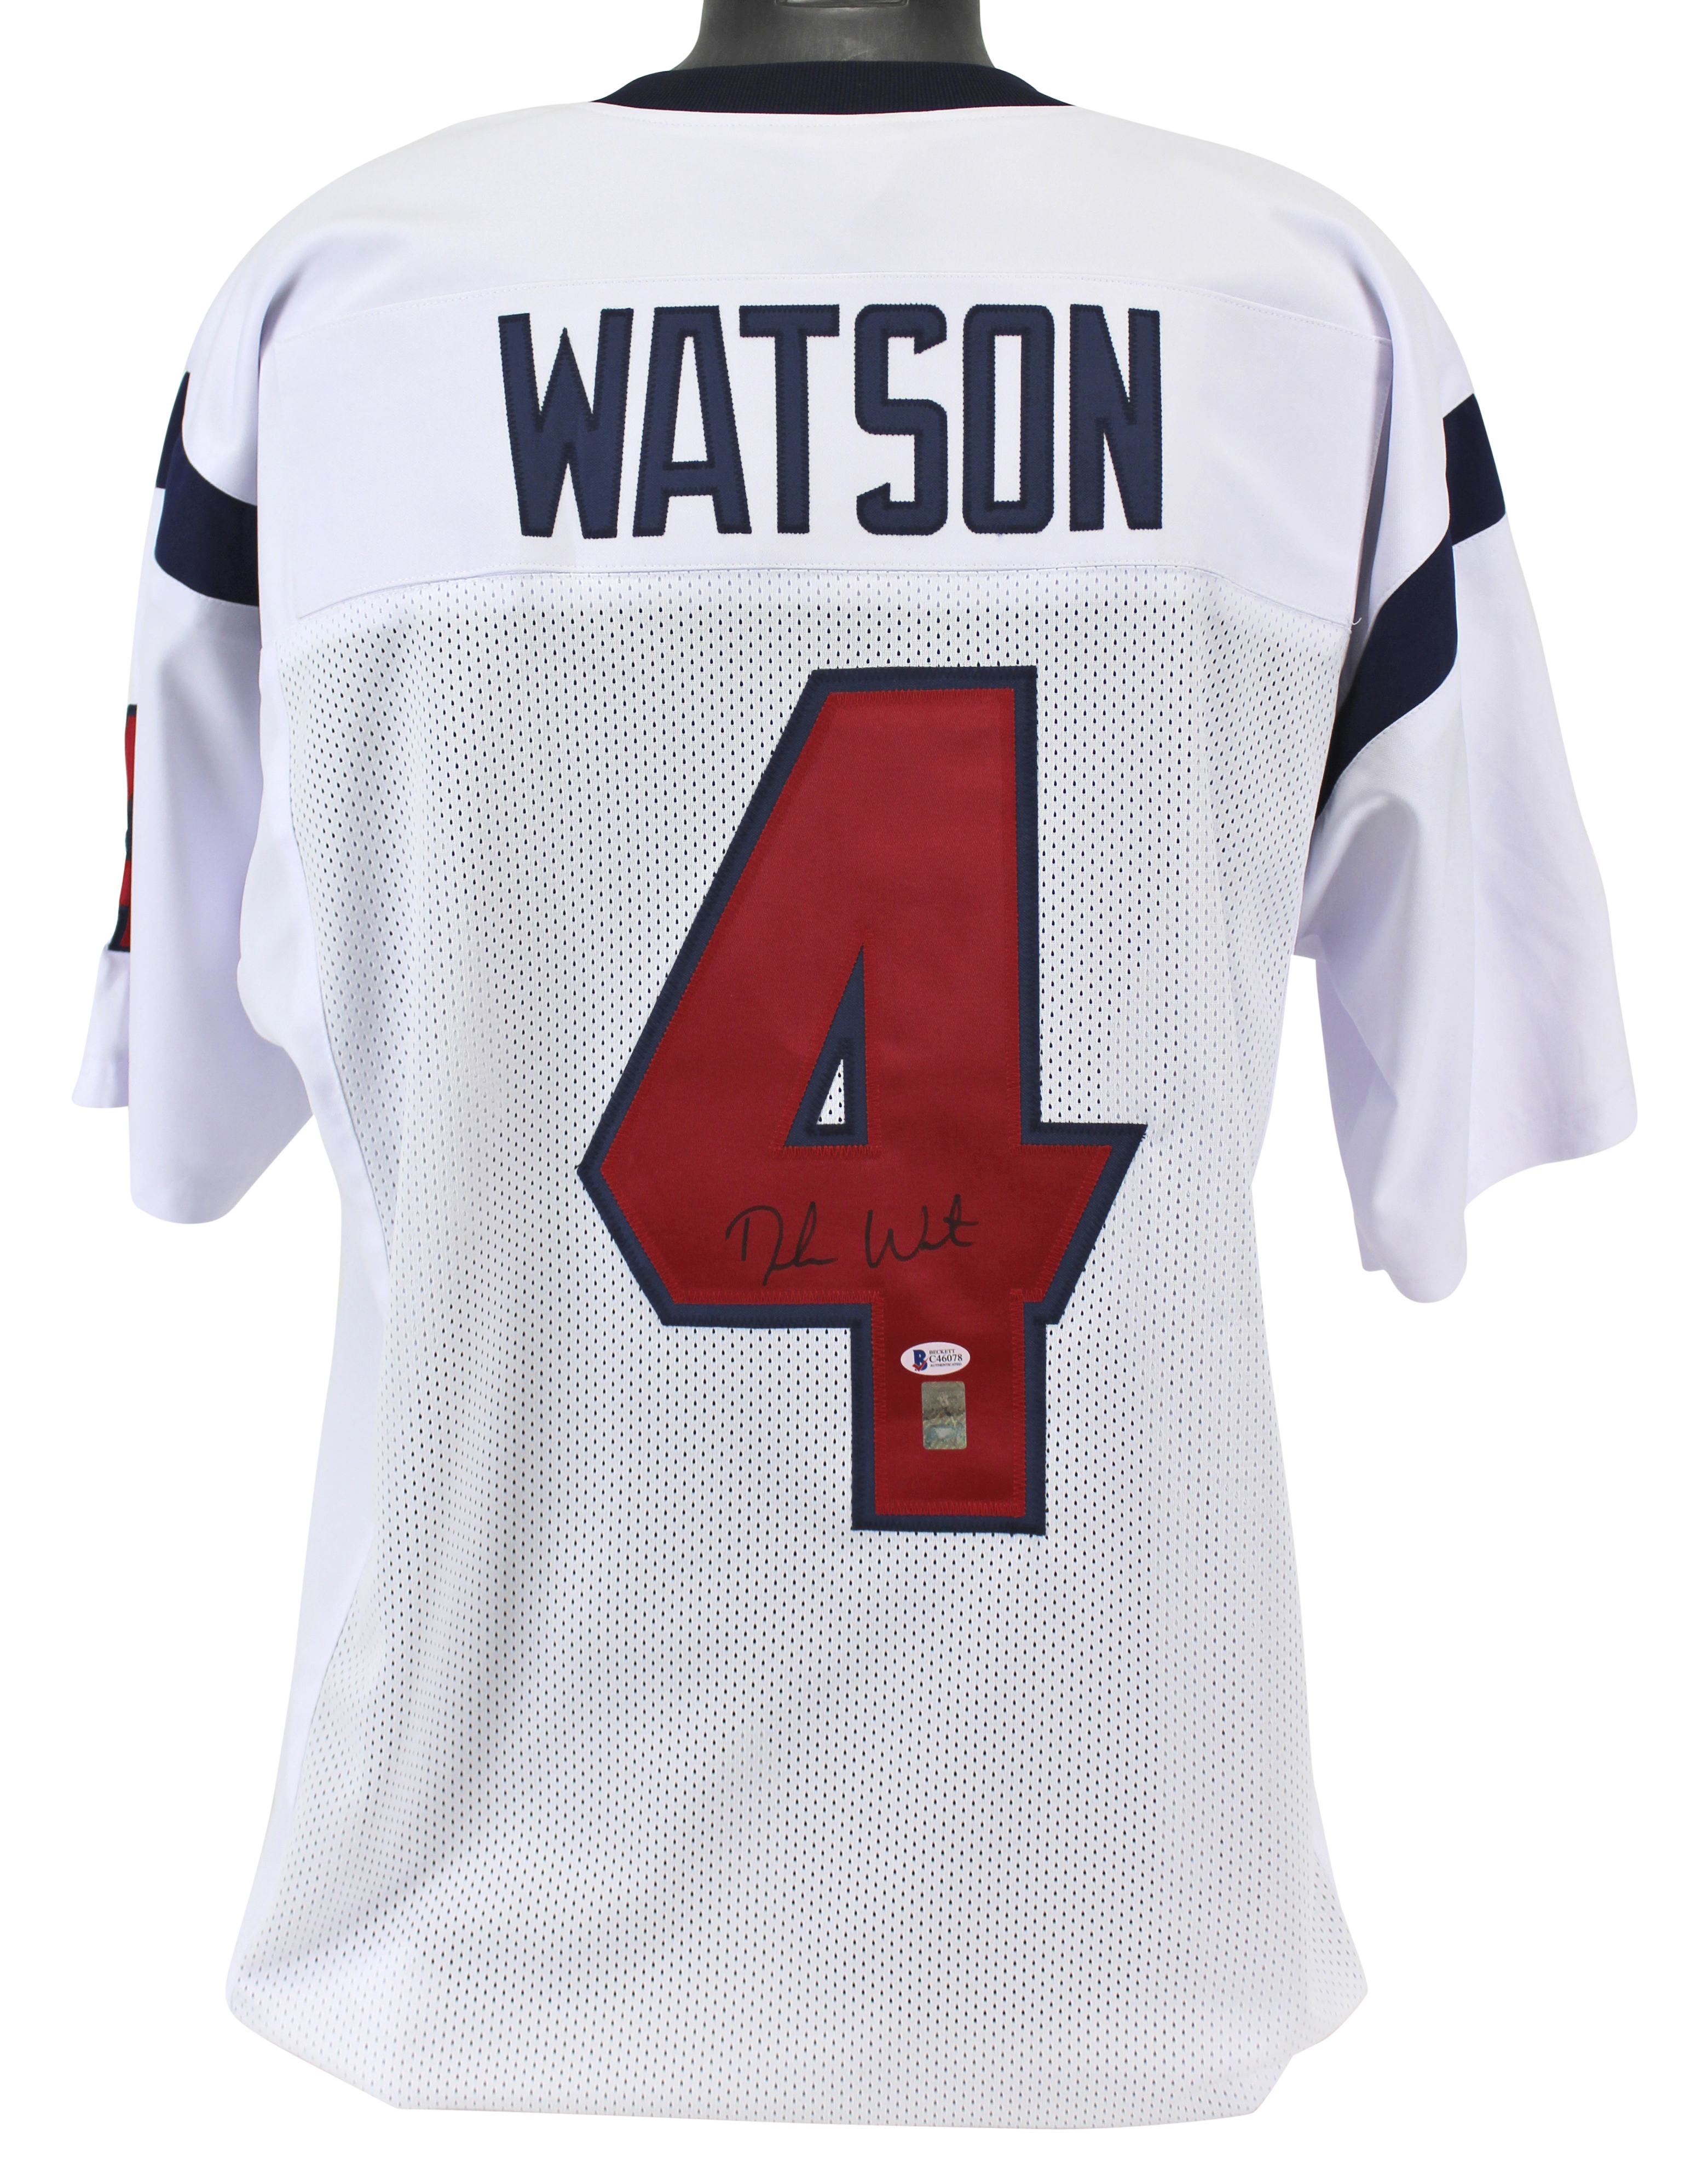 428f84ecf Image is loading Texans-Deshaun-Watson-Authentic-Signed-White-Jersey- Autographed-